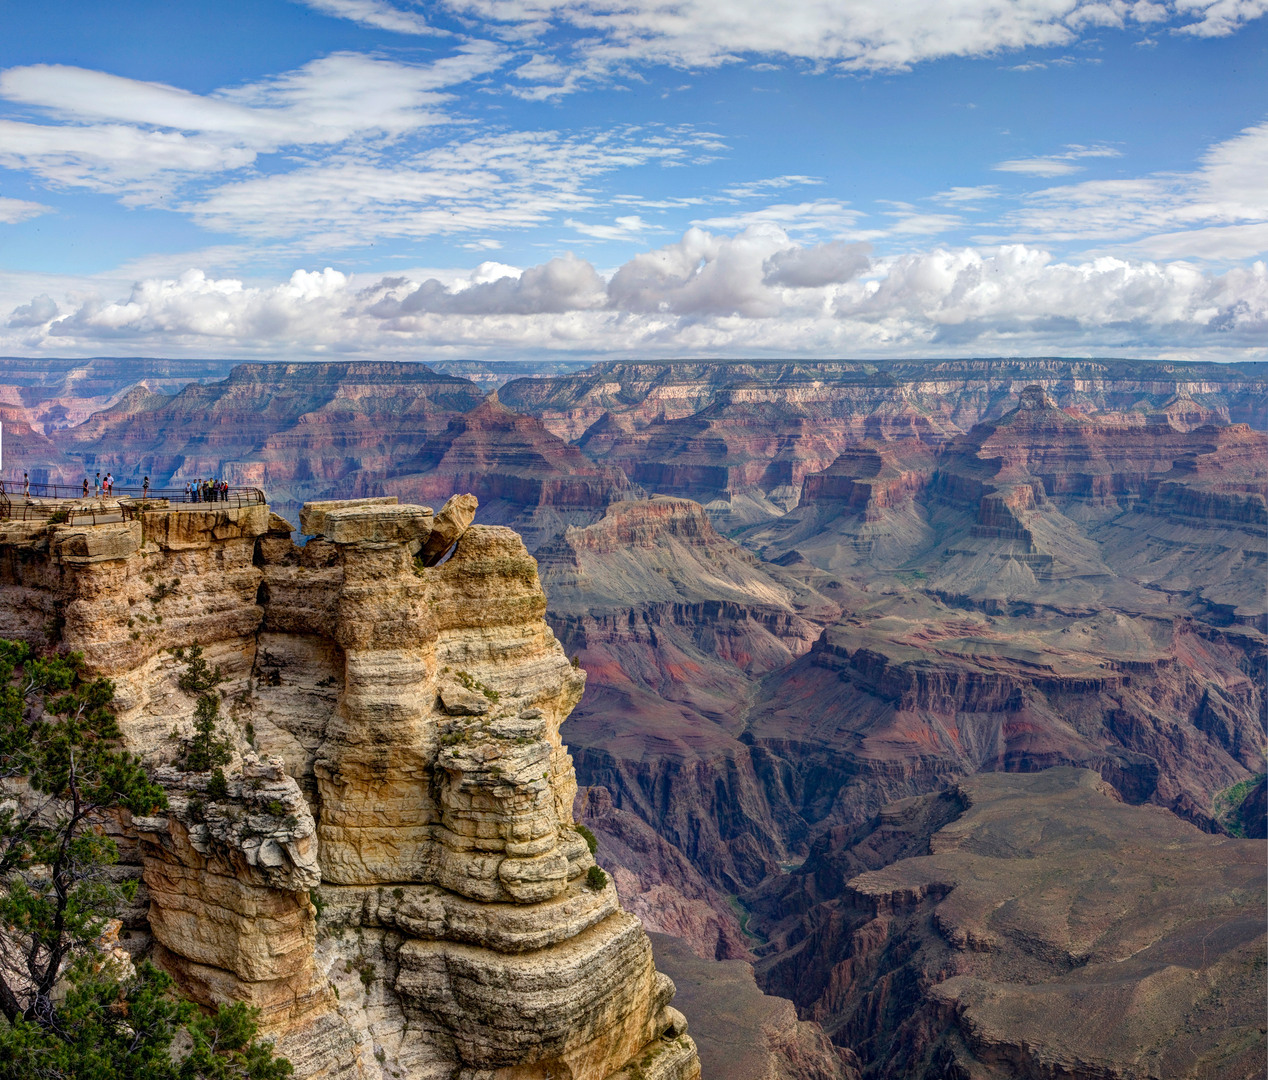 Grand_Canyon_National_Park_Mather_Point_Pano_03